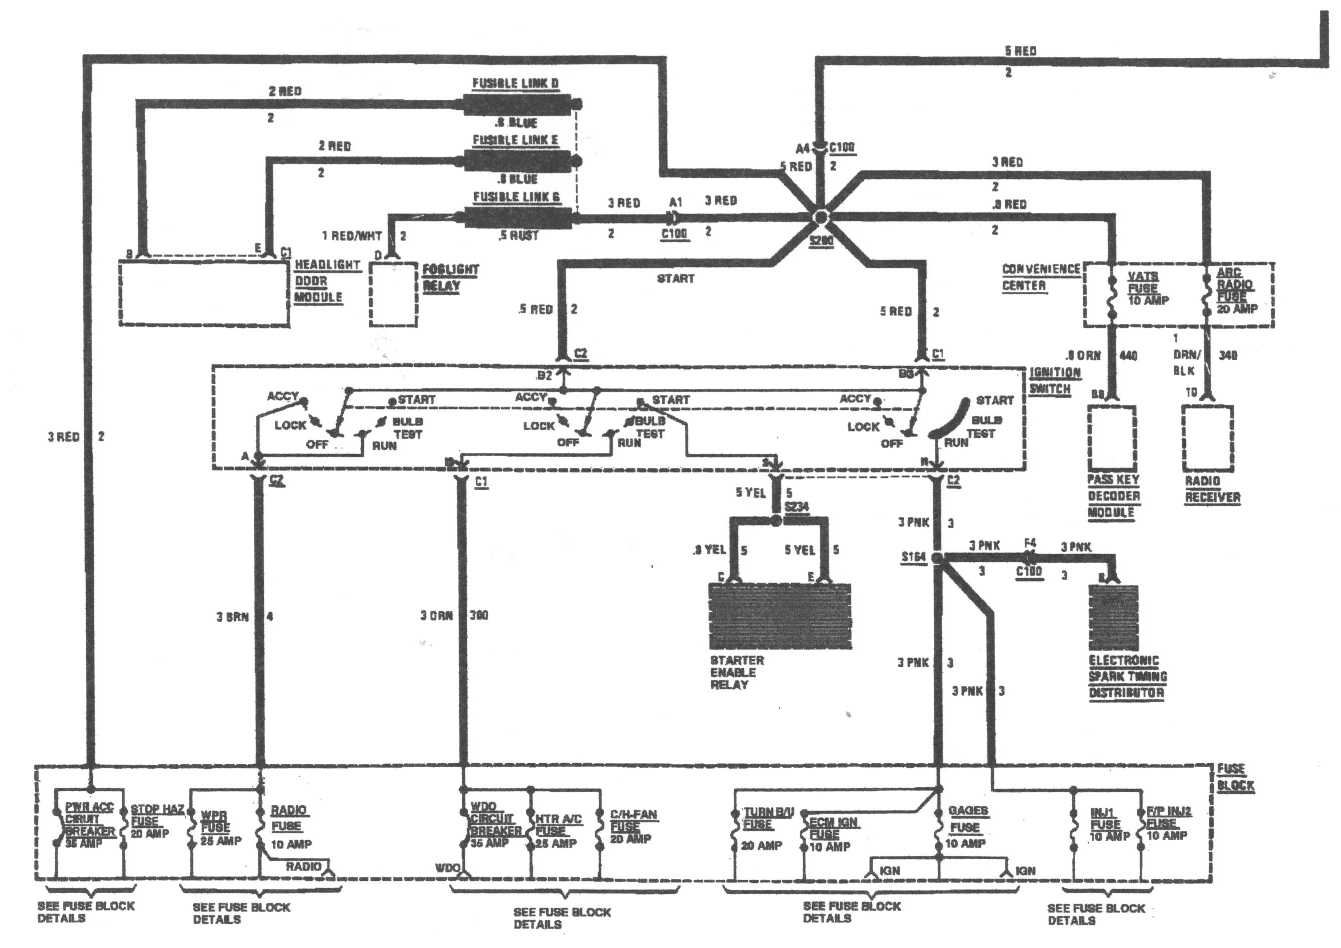 92 s 10 wiring diagram schematics wiring diagrams u2022 rh hokispokisrecords com